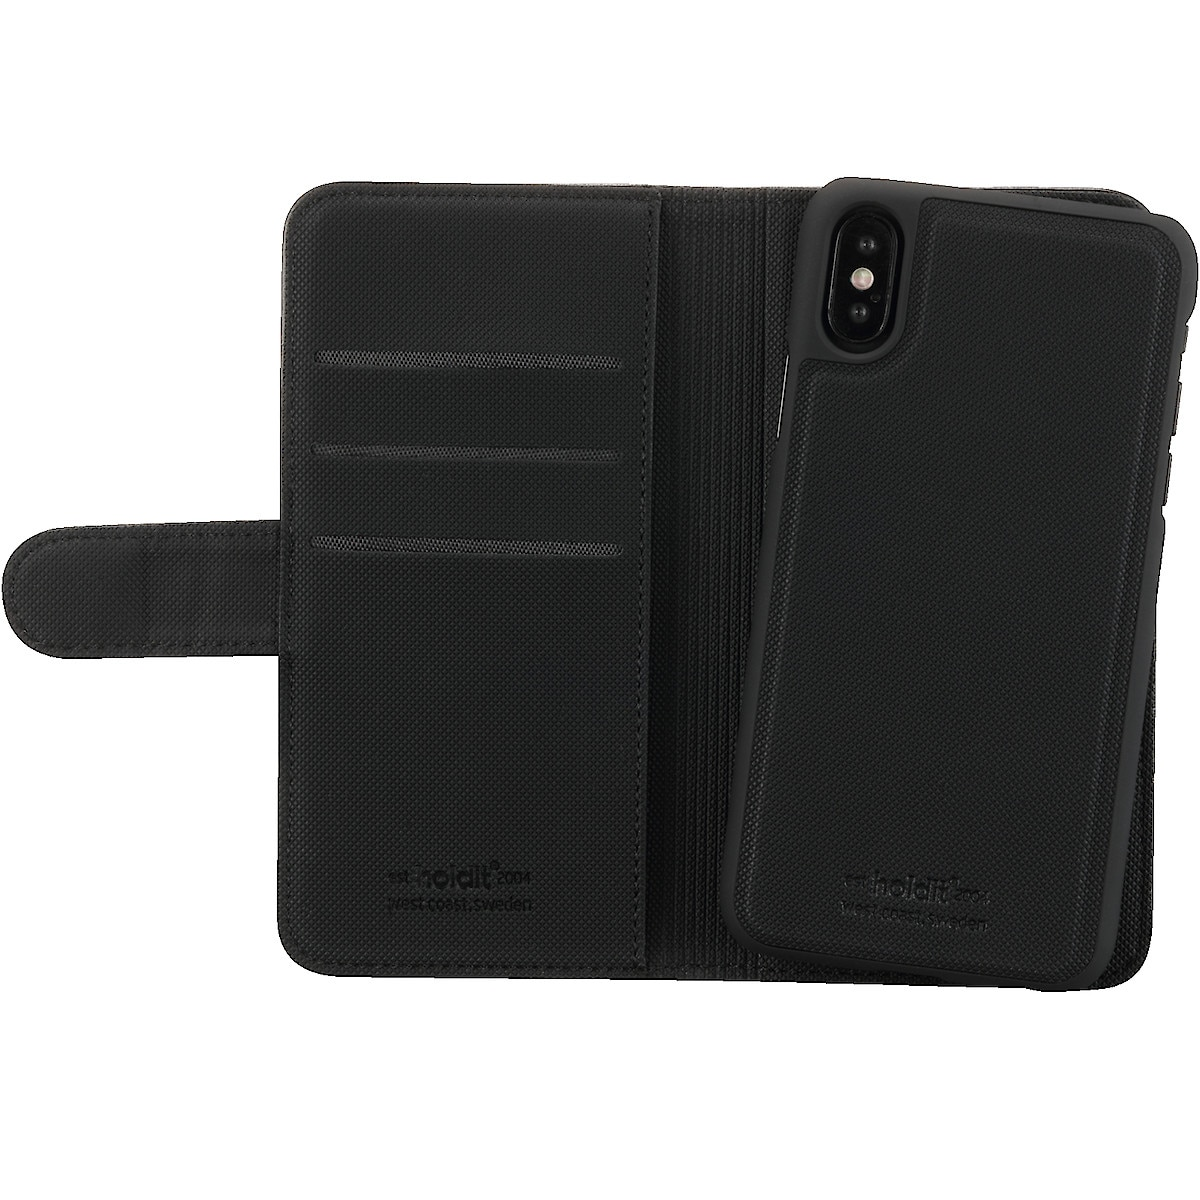 Holdit lommebokfutteral for iPhone X/XS